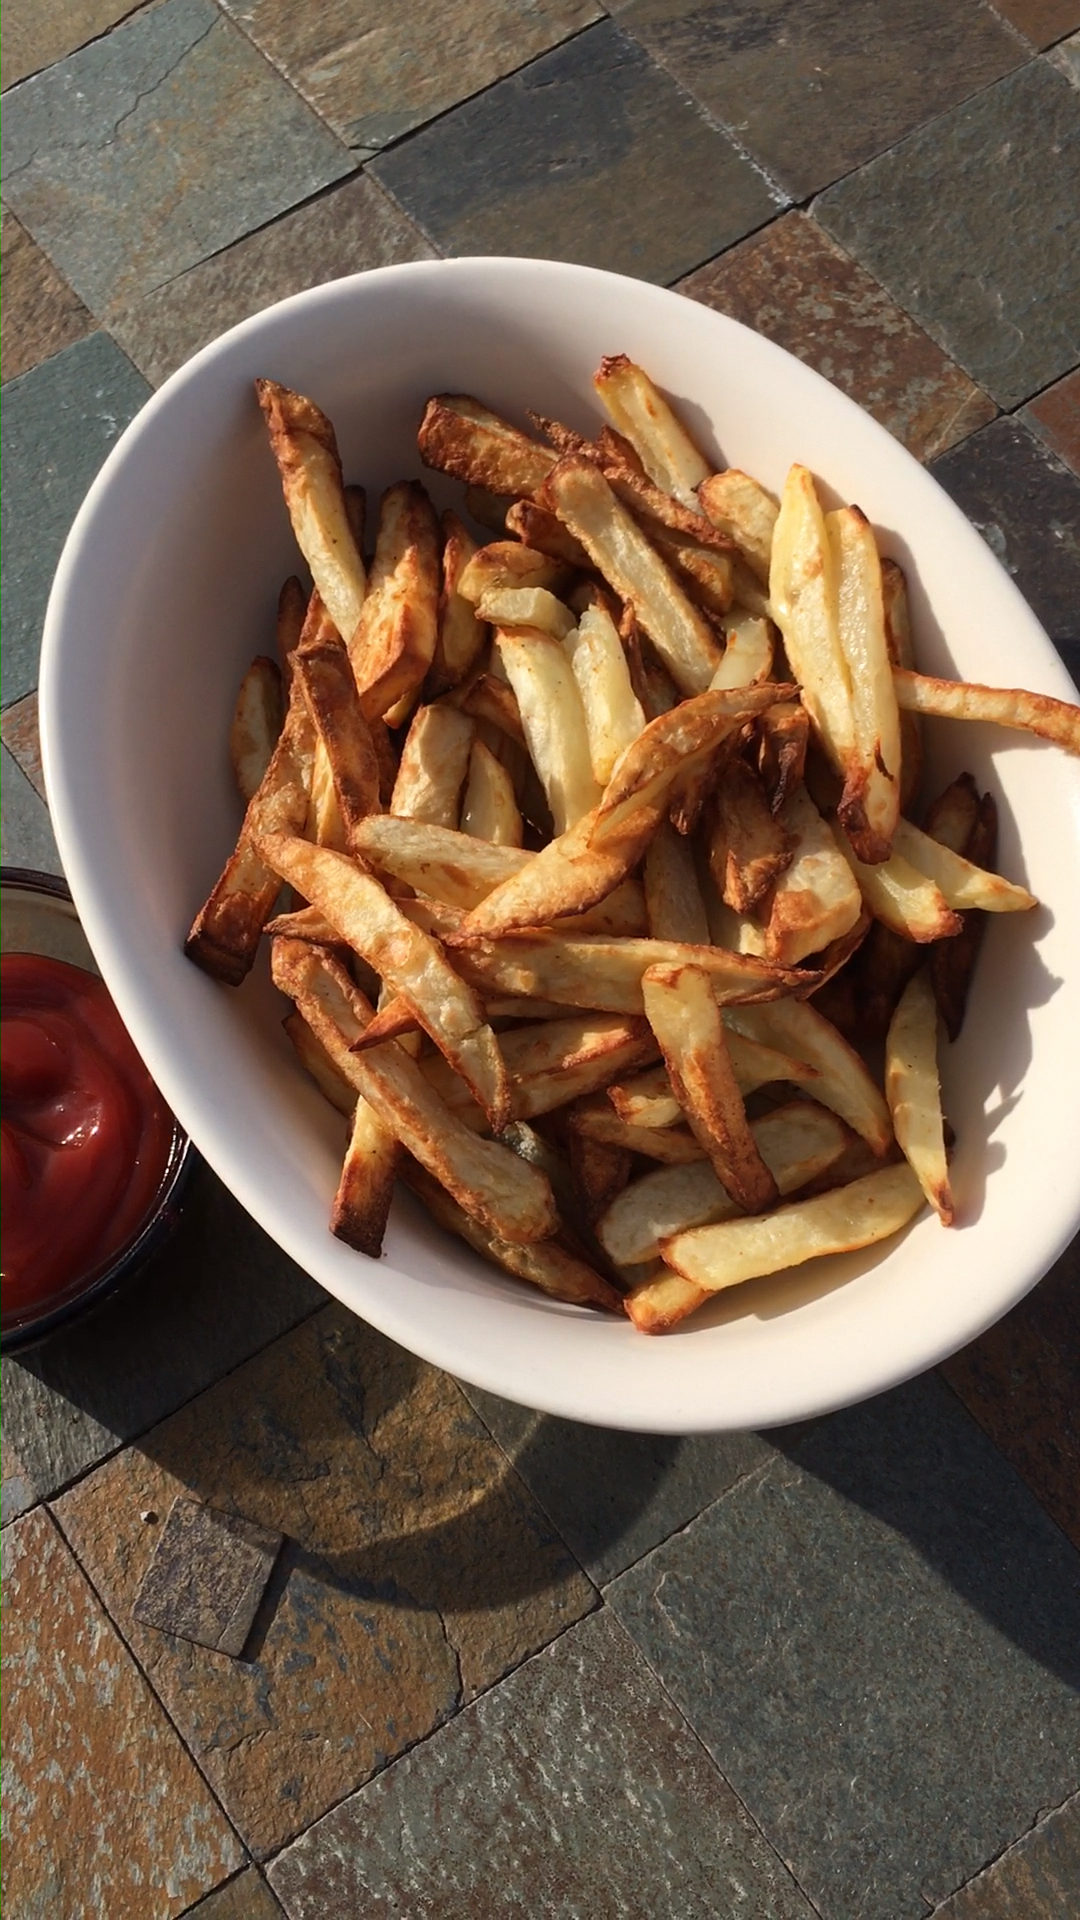 This is a simple 4 ingredient recipe to make easy air fryer French fries using only 2 teaspoons of c...